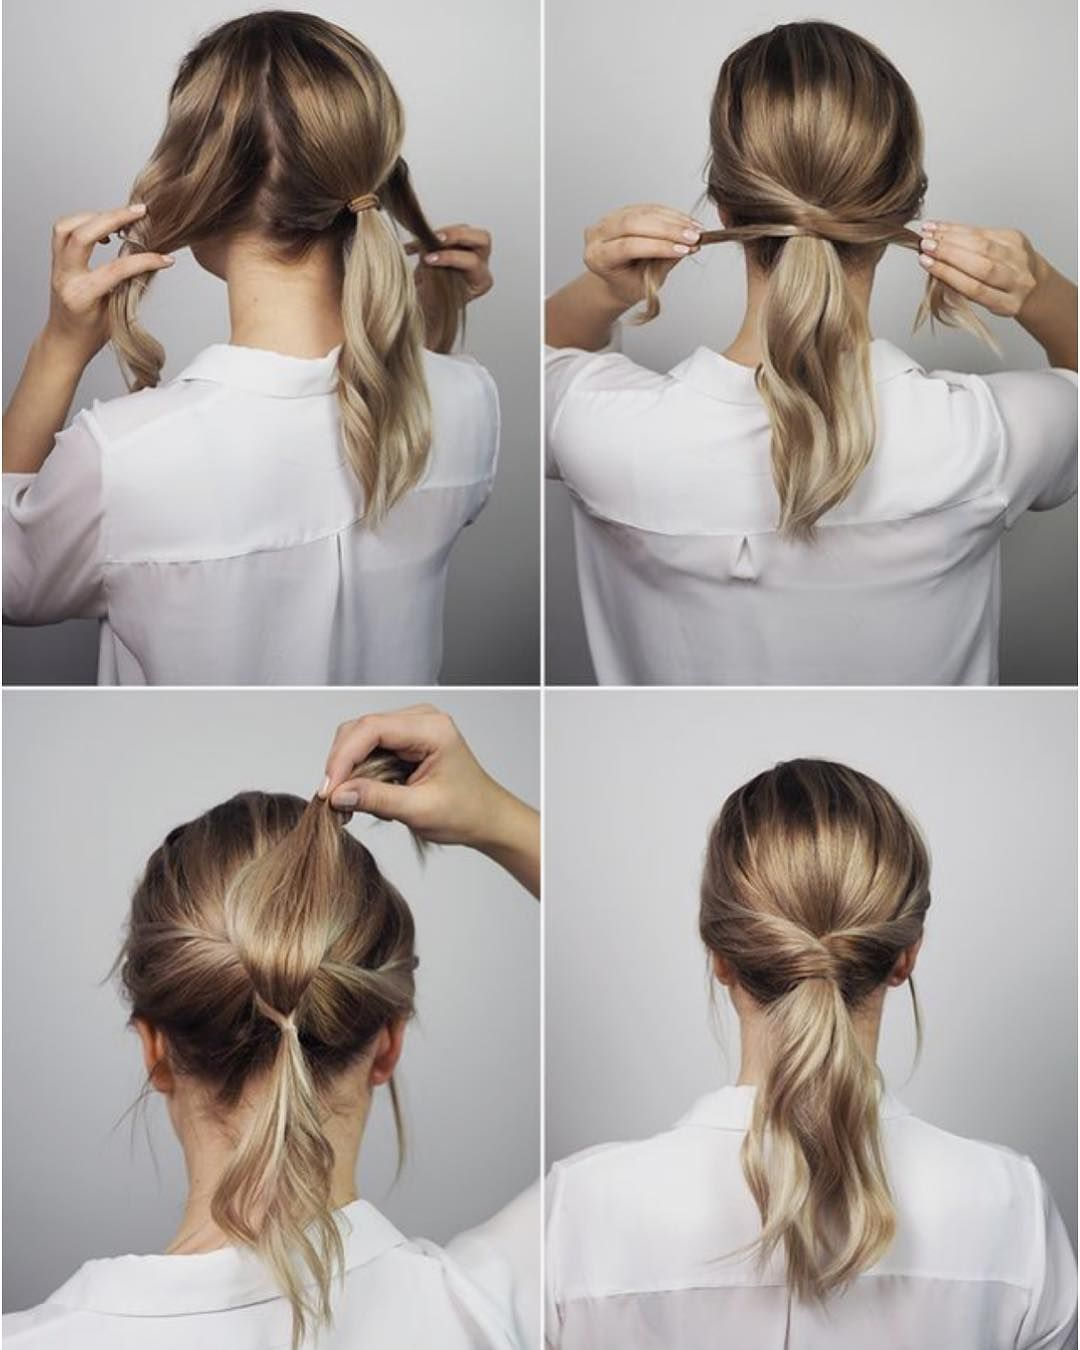 10 Easy Hairstyles For Long Hair To Do At Home Step By Step Hey Cinderella Office Hairstyles Medium Hair Styles Work Hairstyles